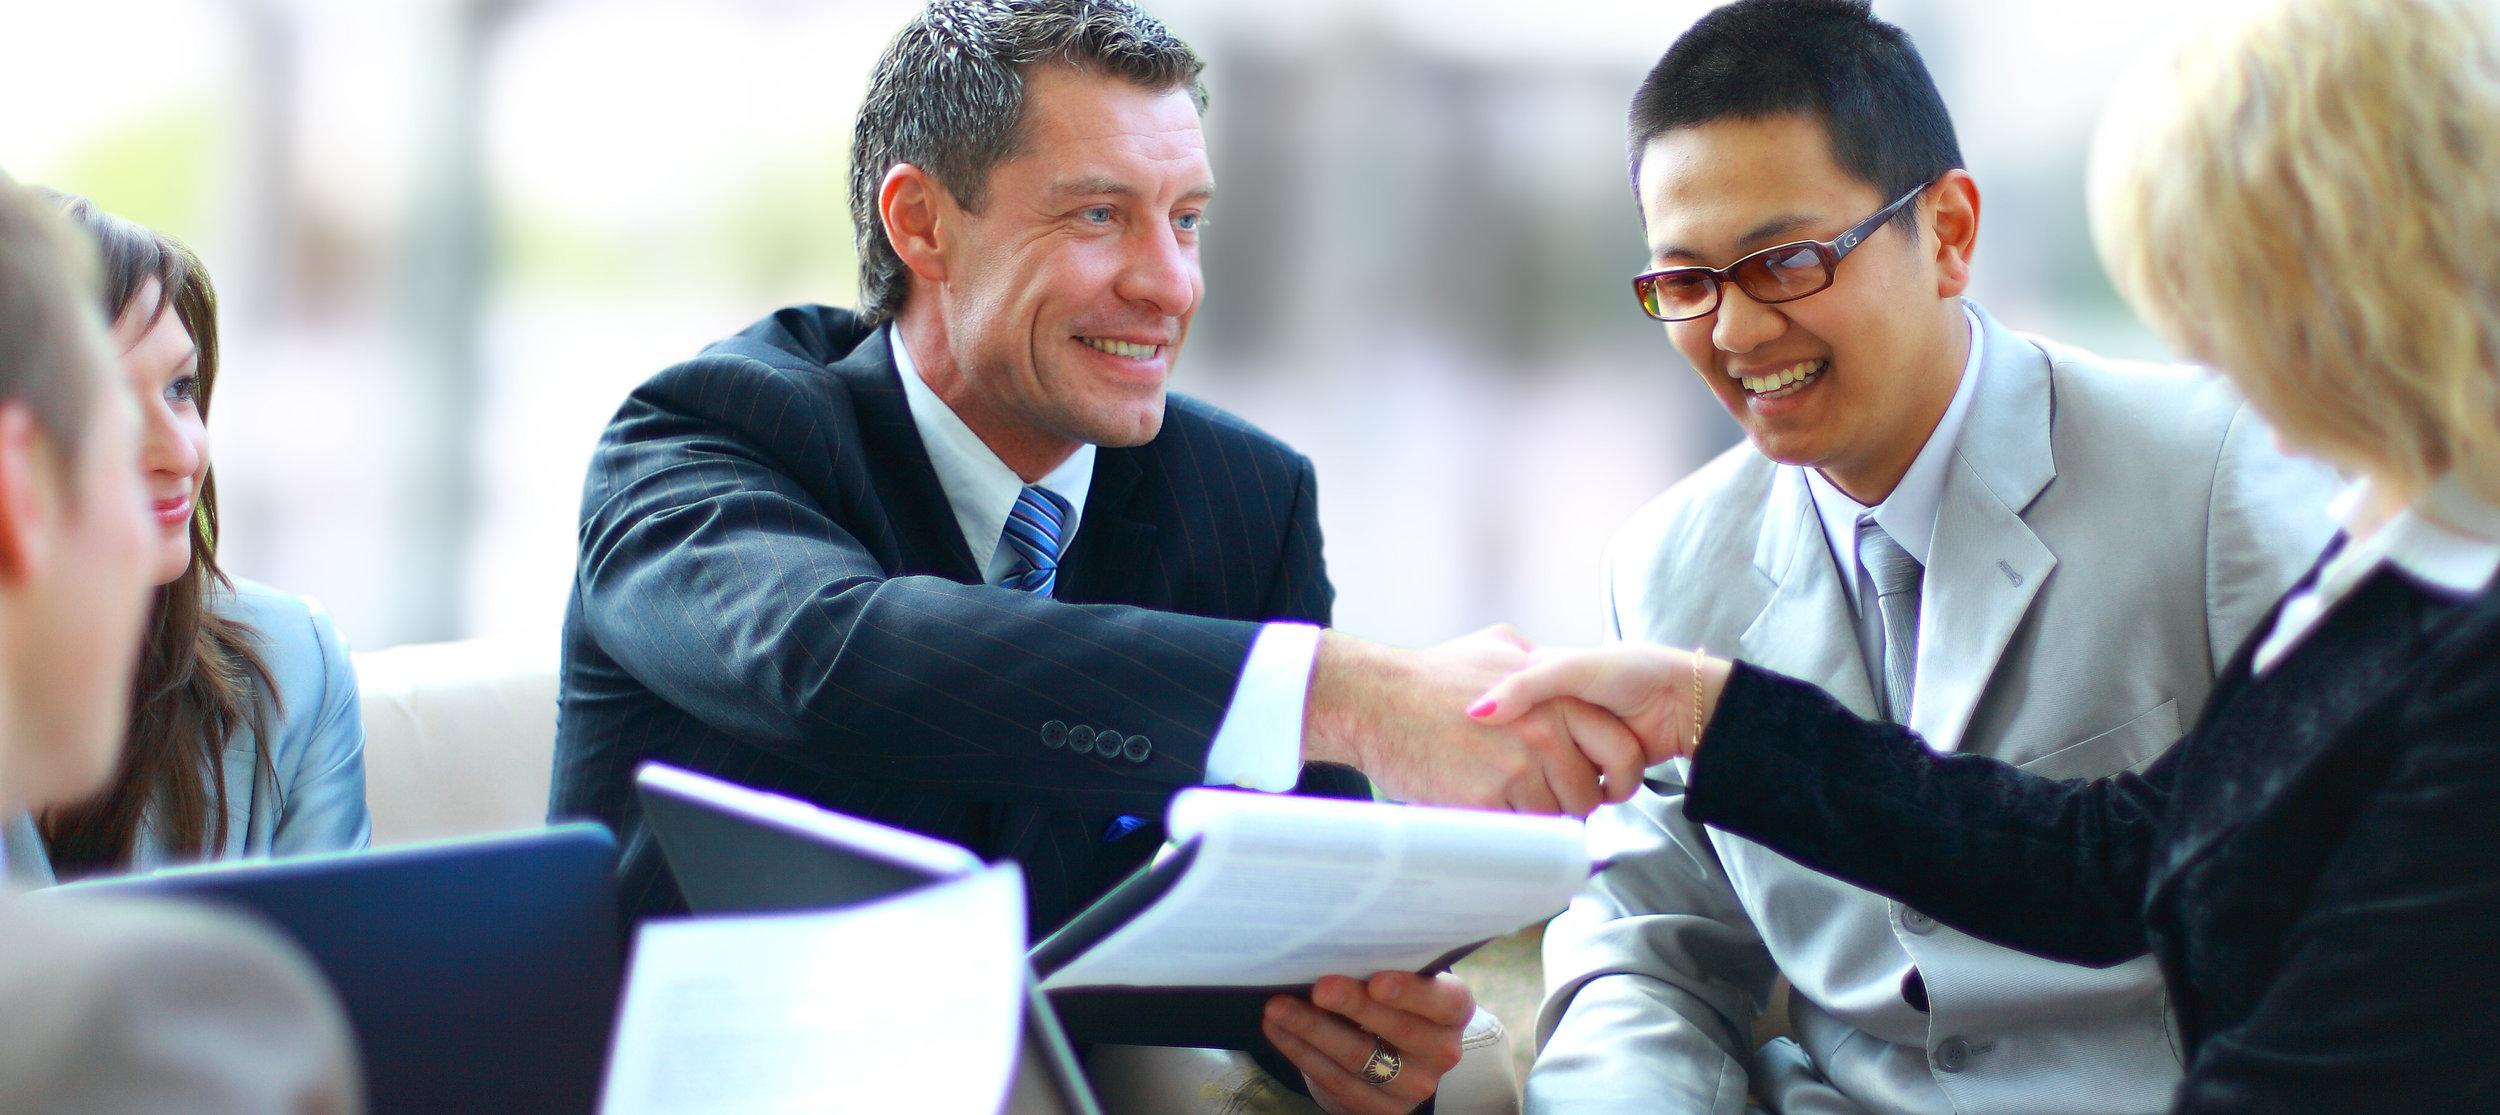 41683451-Black-man-and-white-woman-smiling-and-shaking-hands-in-office-building-Stock-Photo.jpg